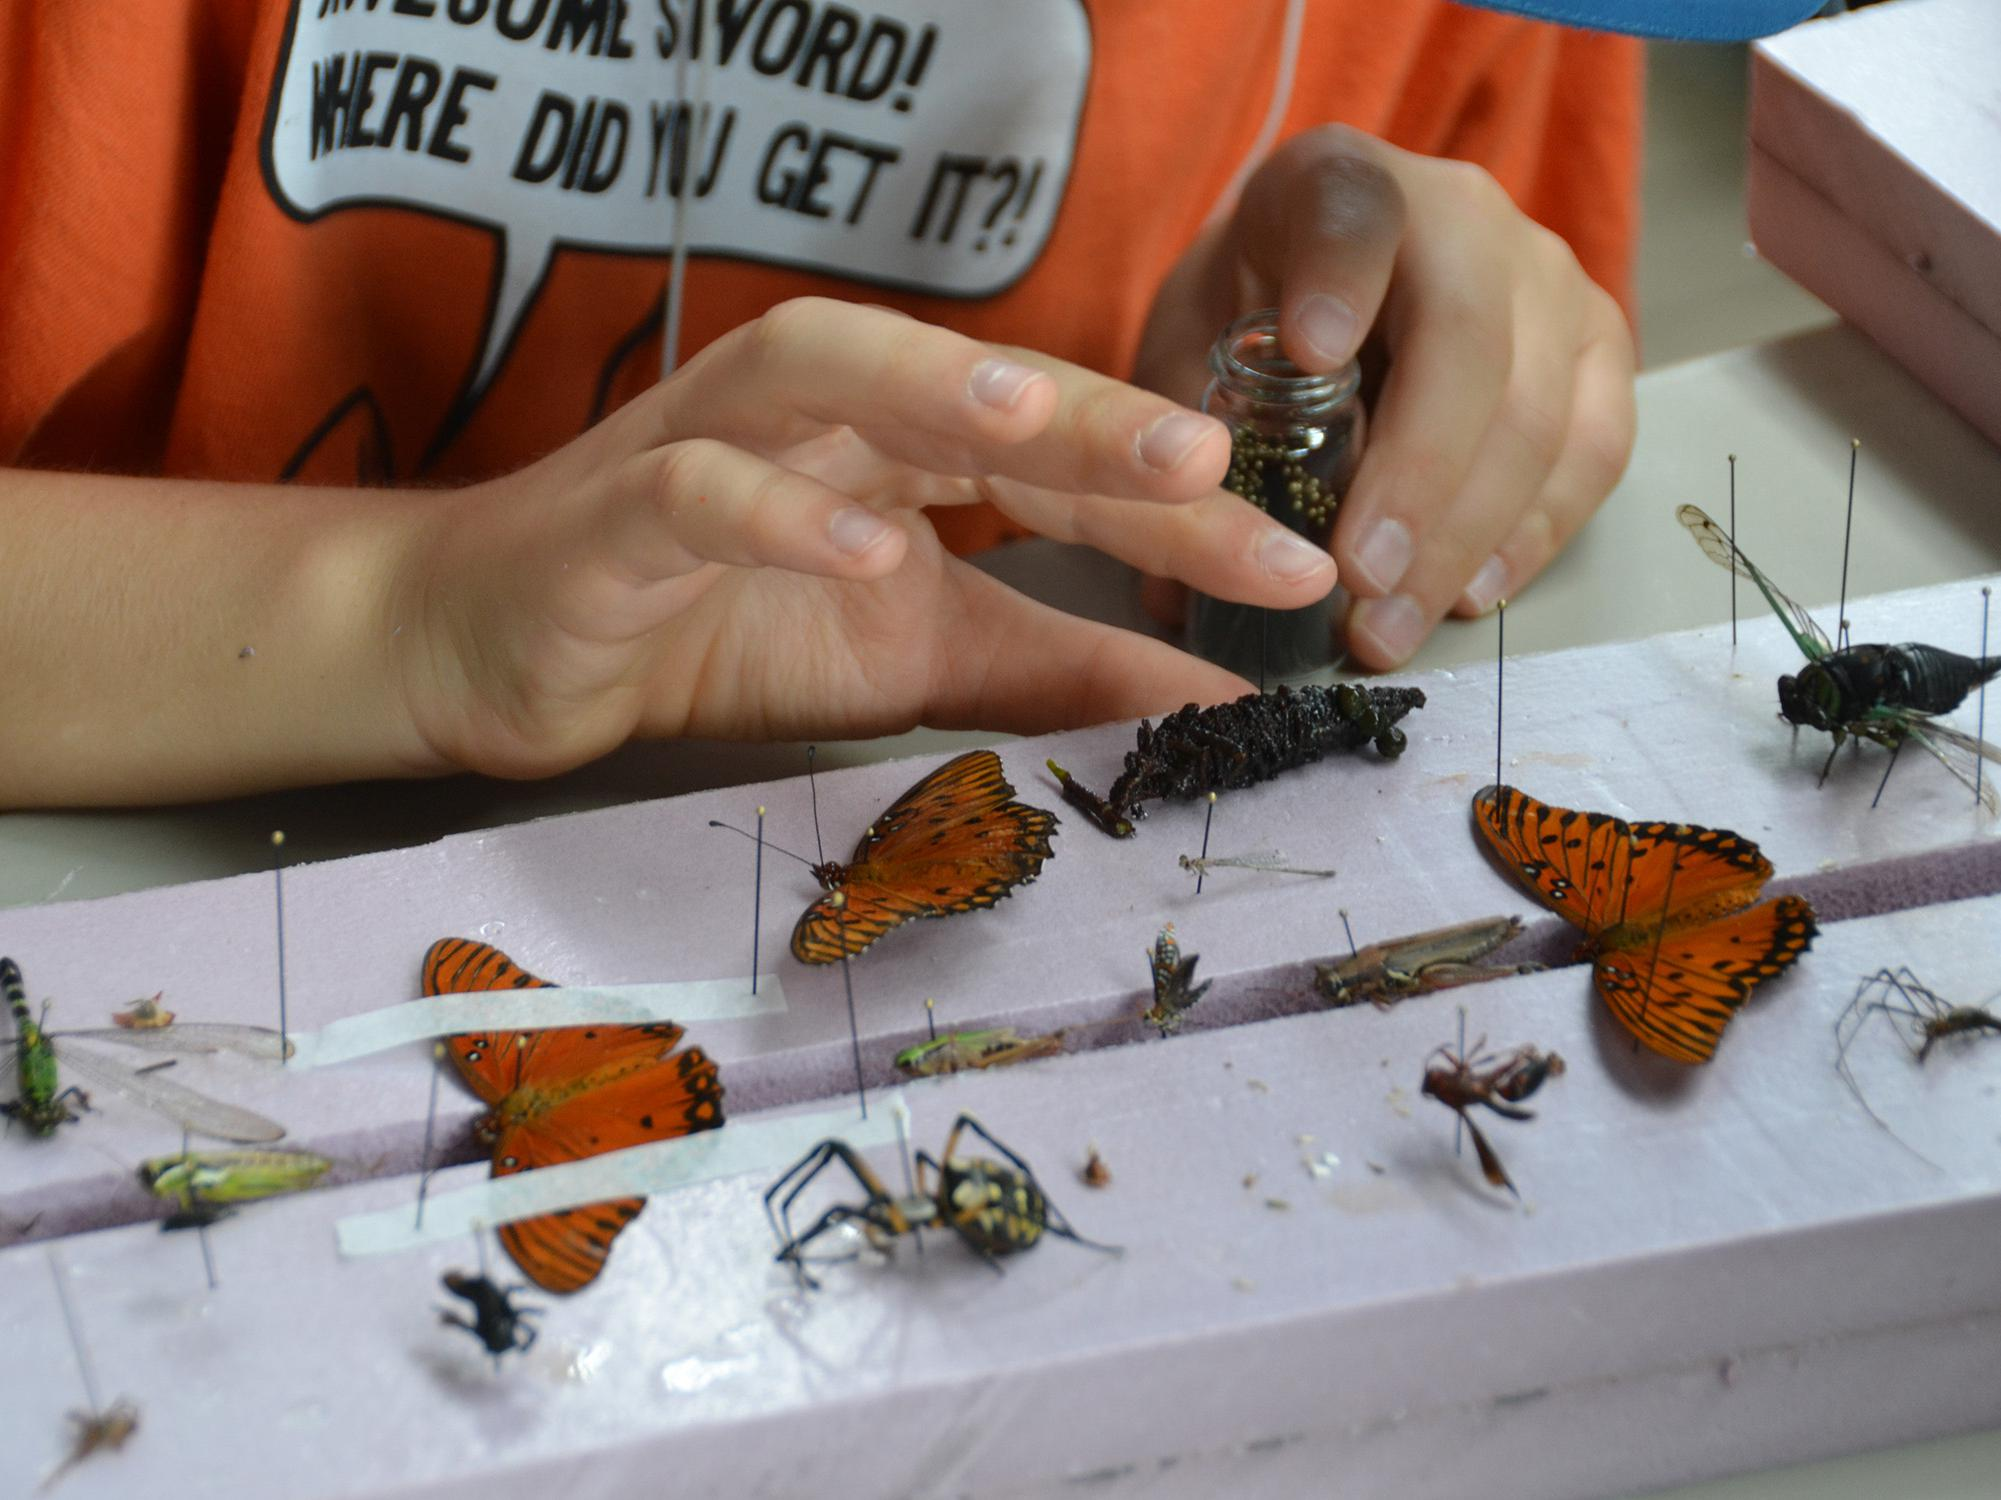 A child's hands poised above a collection of colorful insect specimens, pinned to Styrofoam blocks.